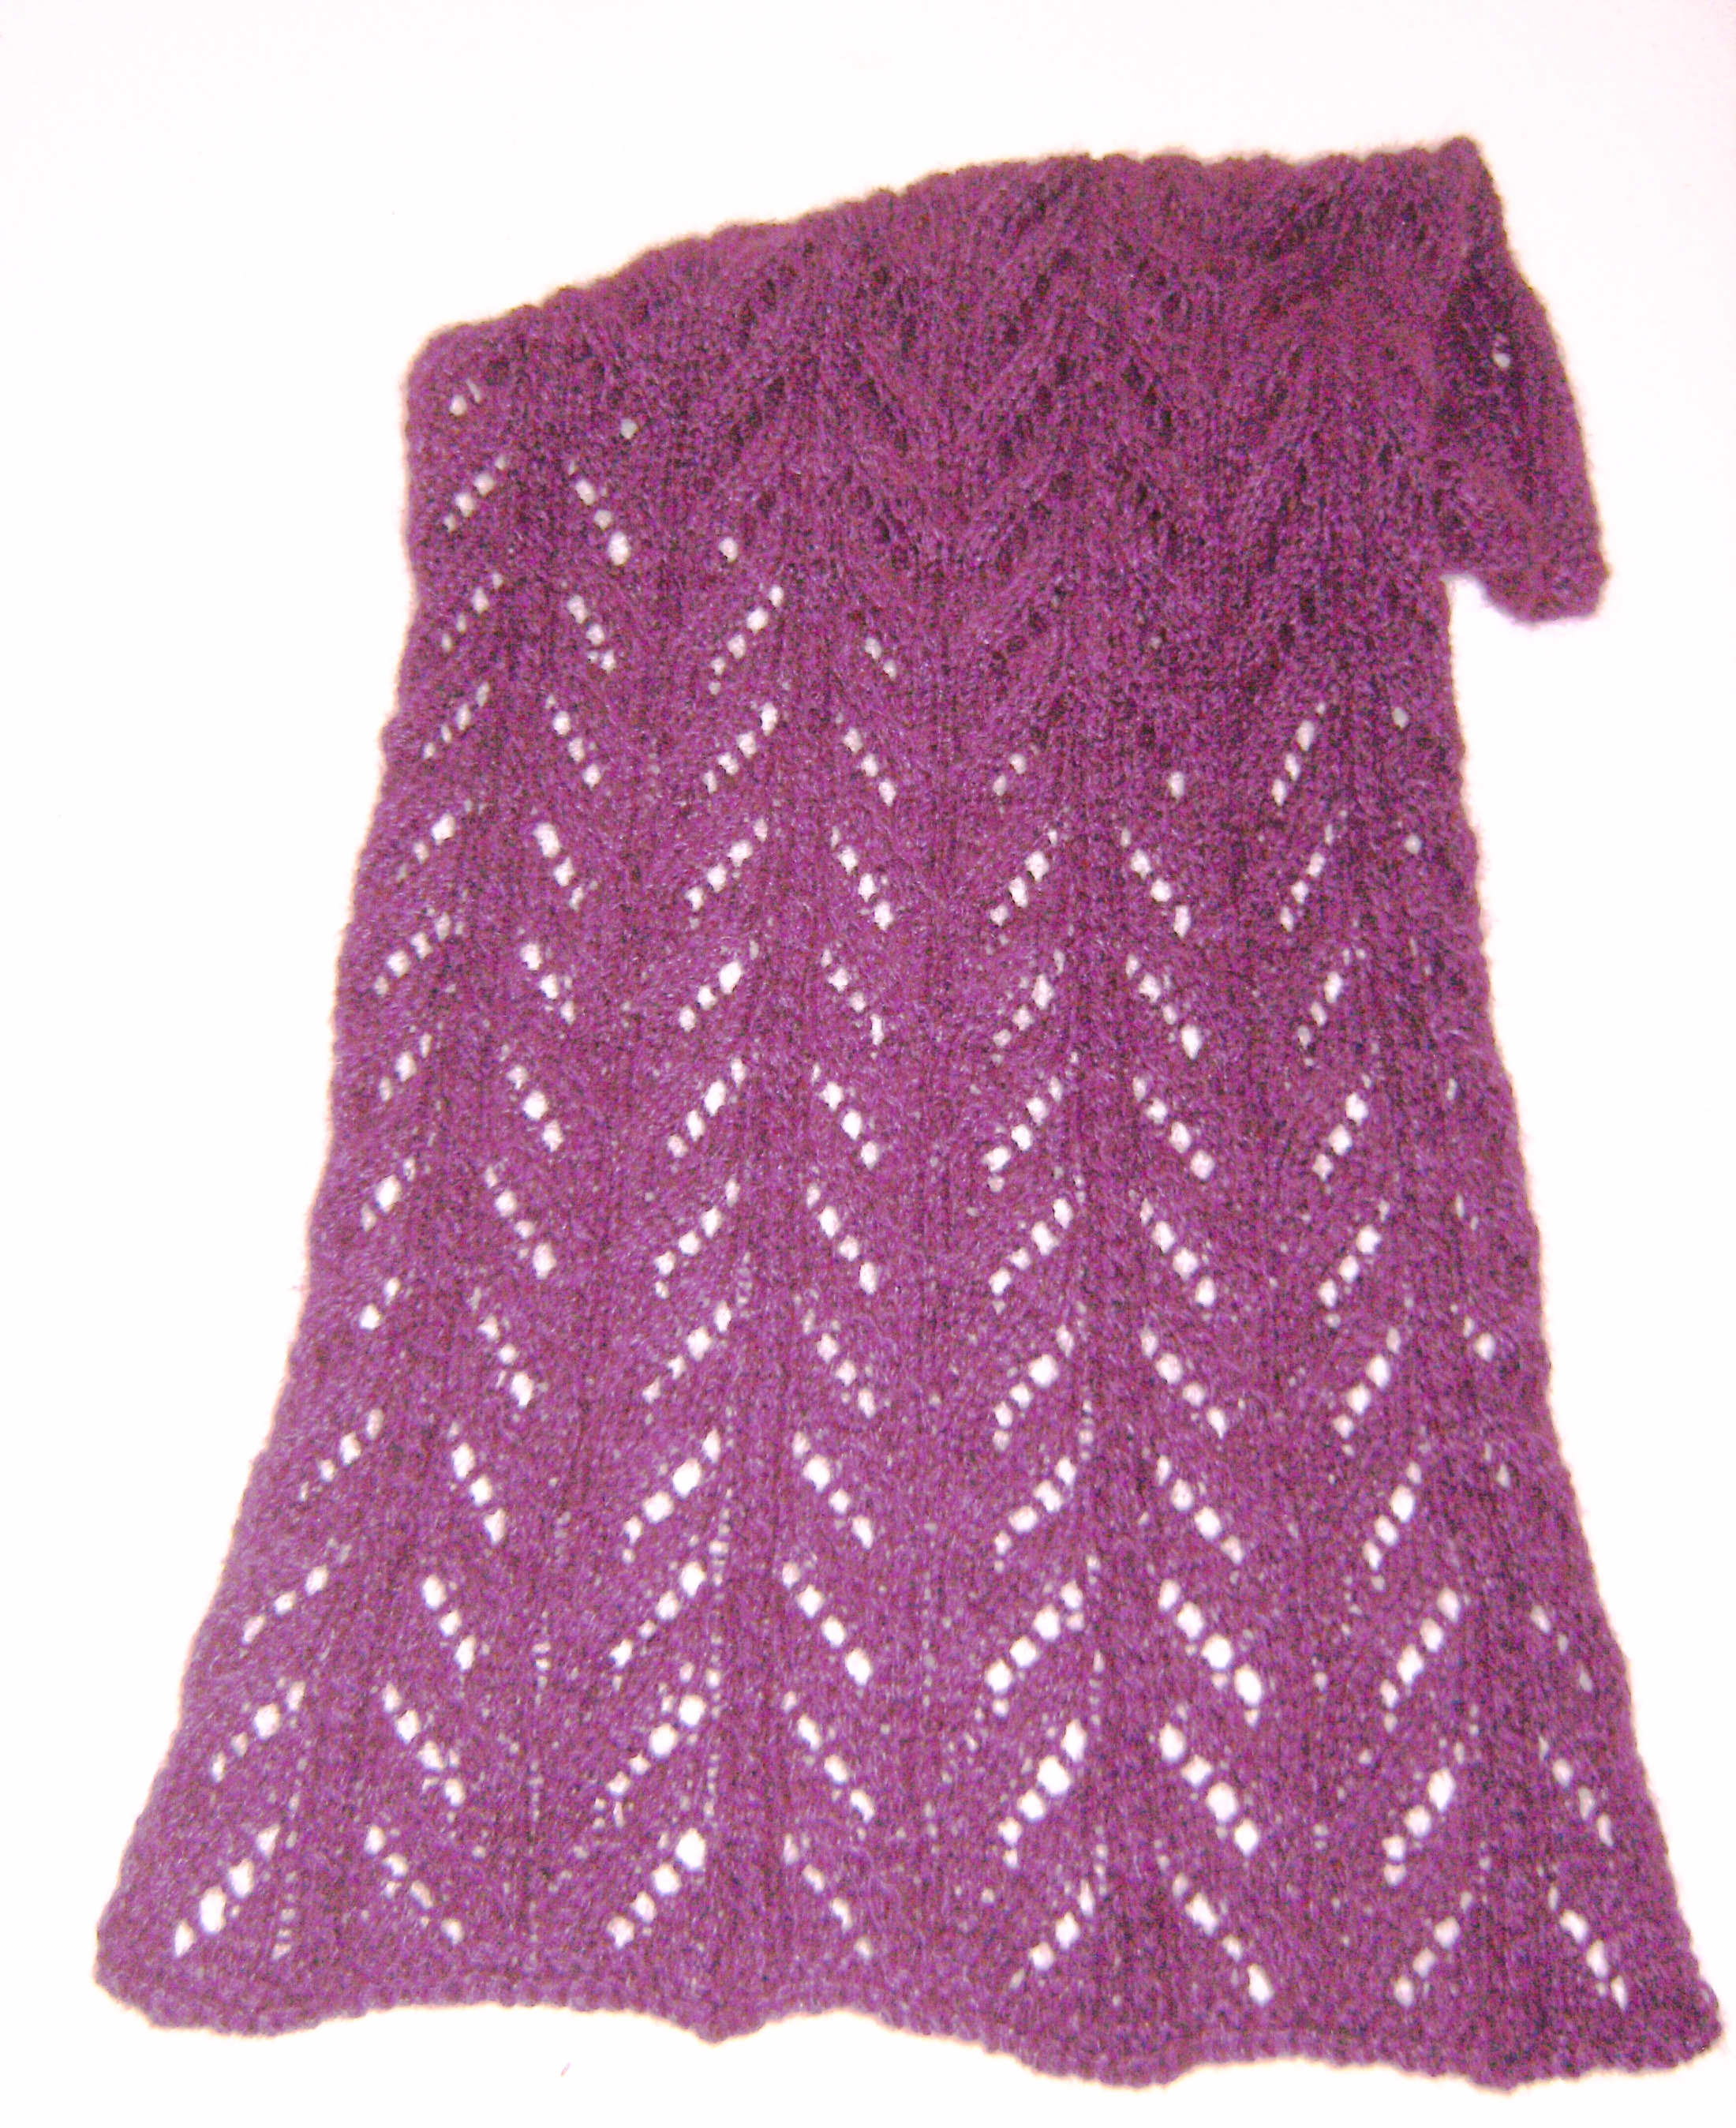 Free Scarf Crochet Patterns For Beginners pictures Crochet Scarf Free Patterns Beginners